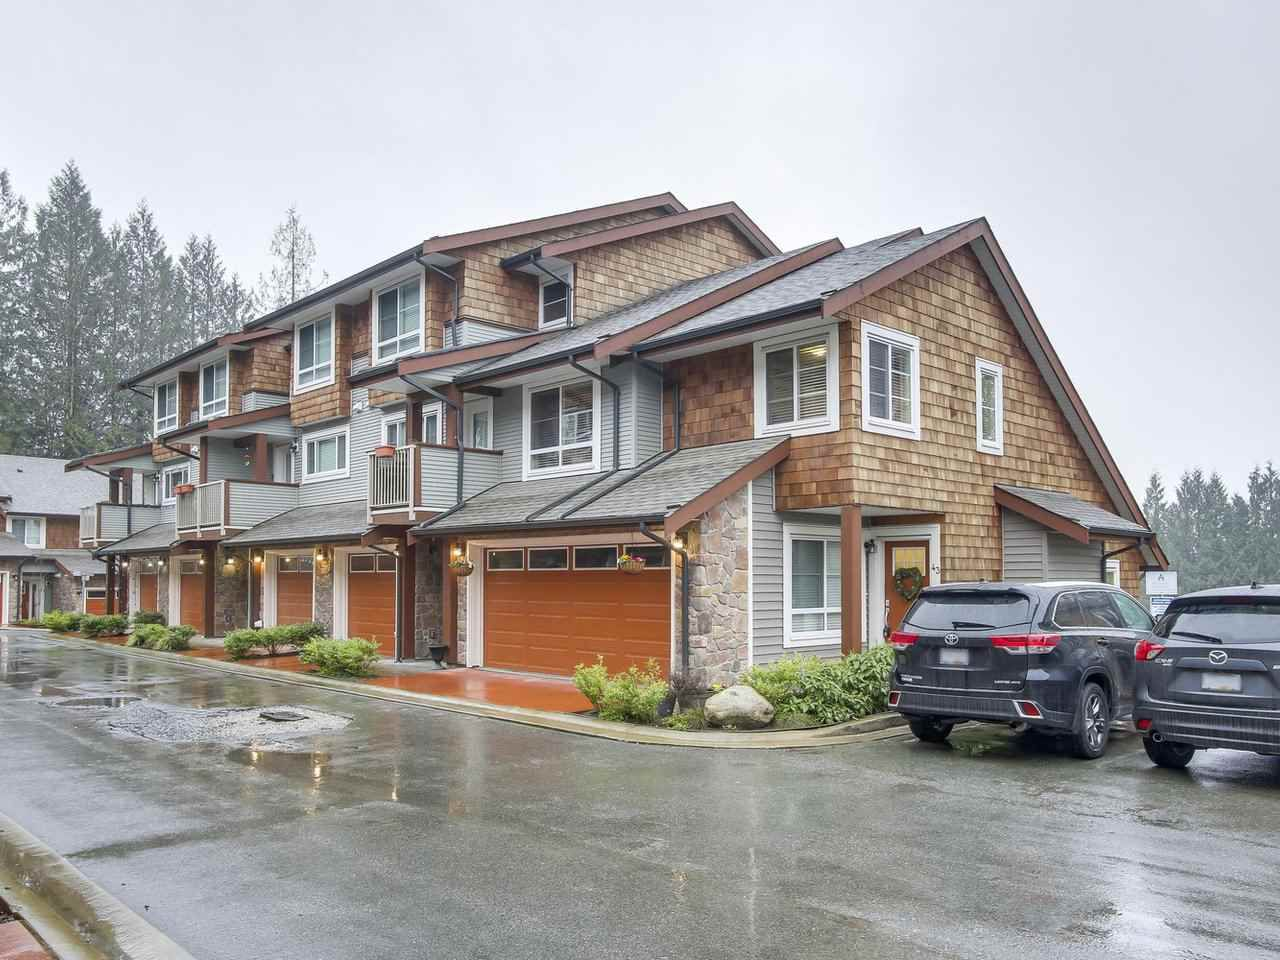 """Main Photo: 43 23651 132 Avenue in Maple Ridge: Silver Valley Townhouse for sale in """"MYRON'S MUSE"""" : MLS®# R2237190"""